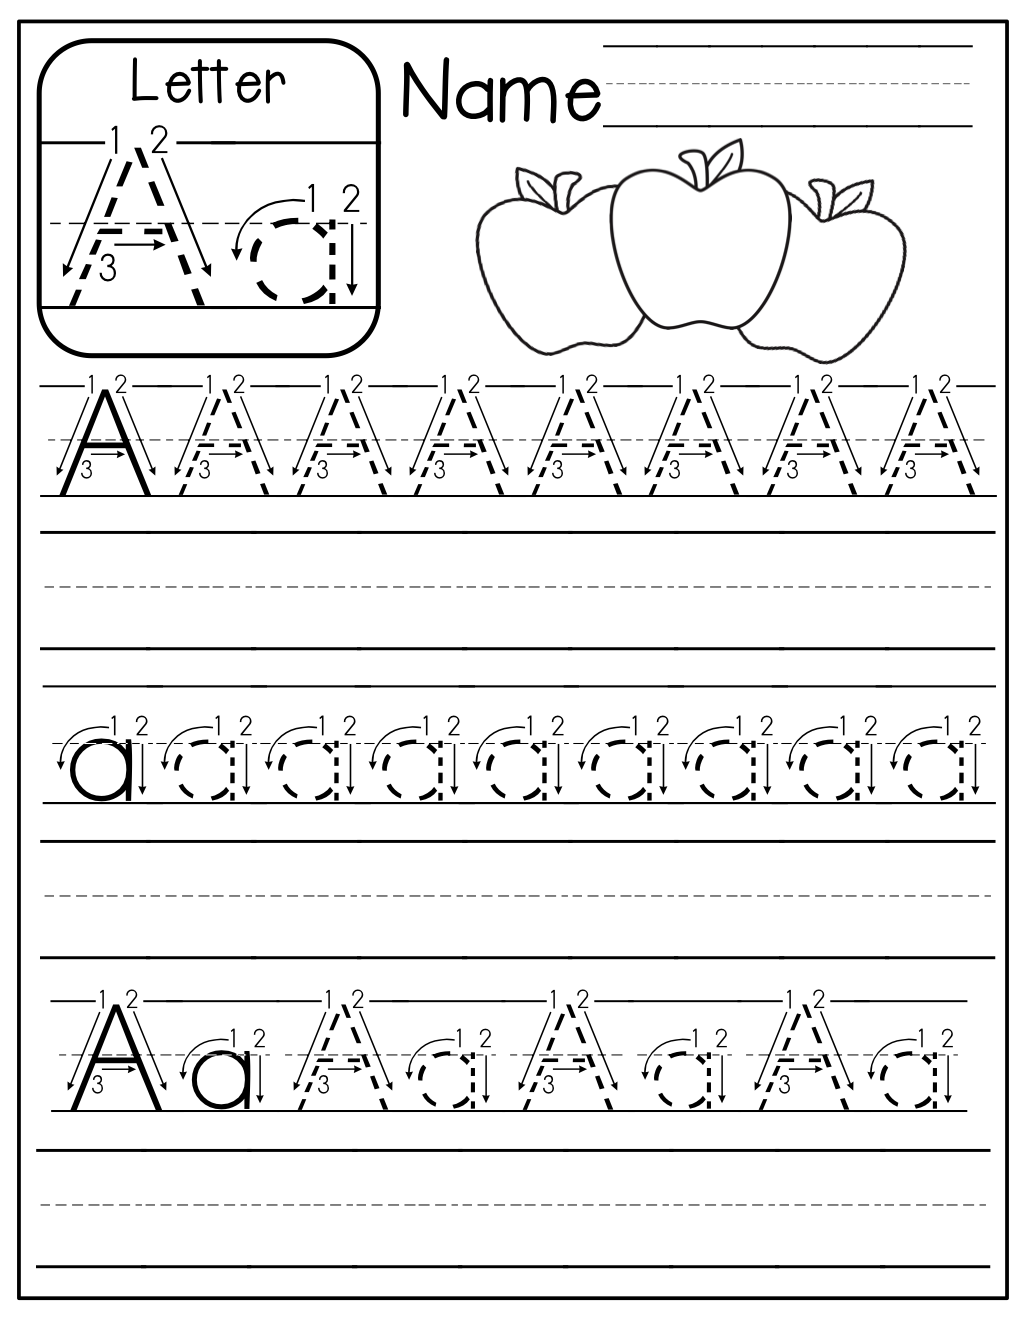 Worksheet ~ Freebie Z Handwriting Practice Pages in Name Tracing Worksheets A To Z